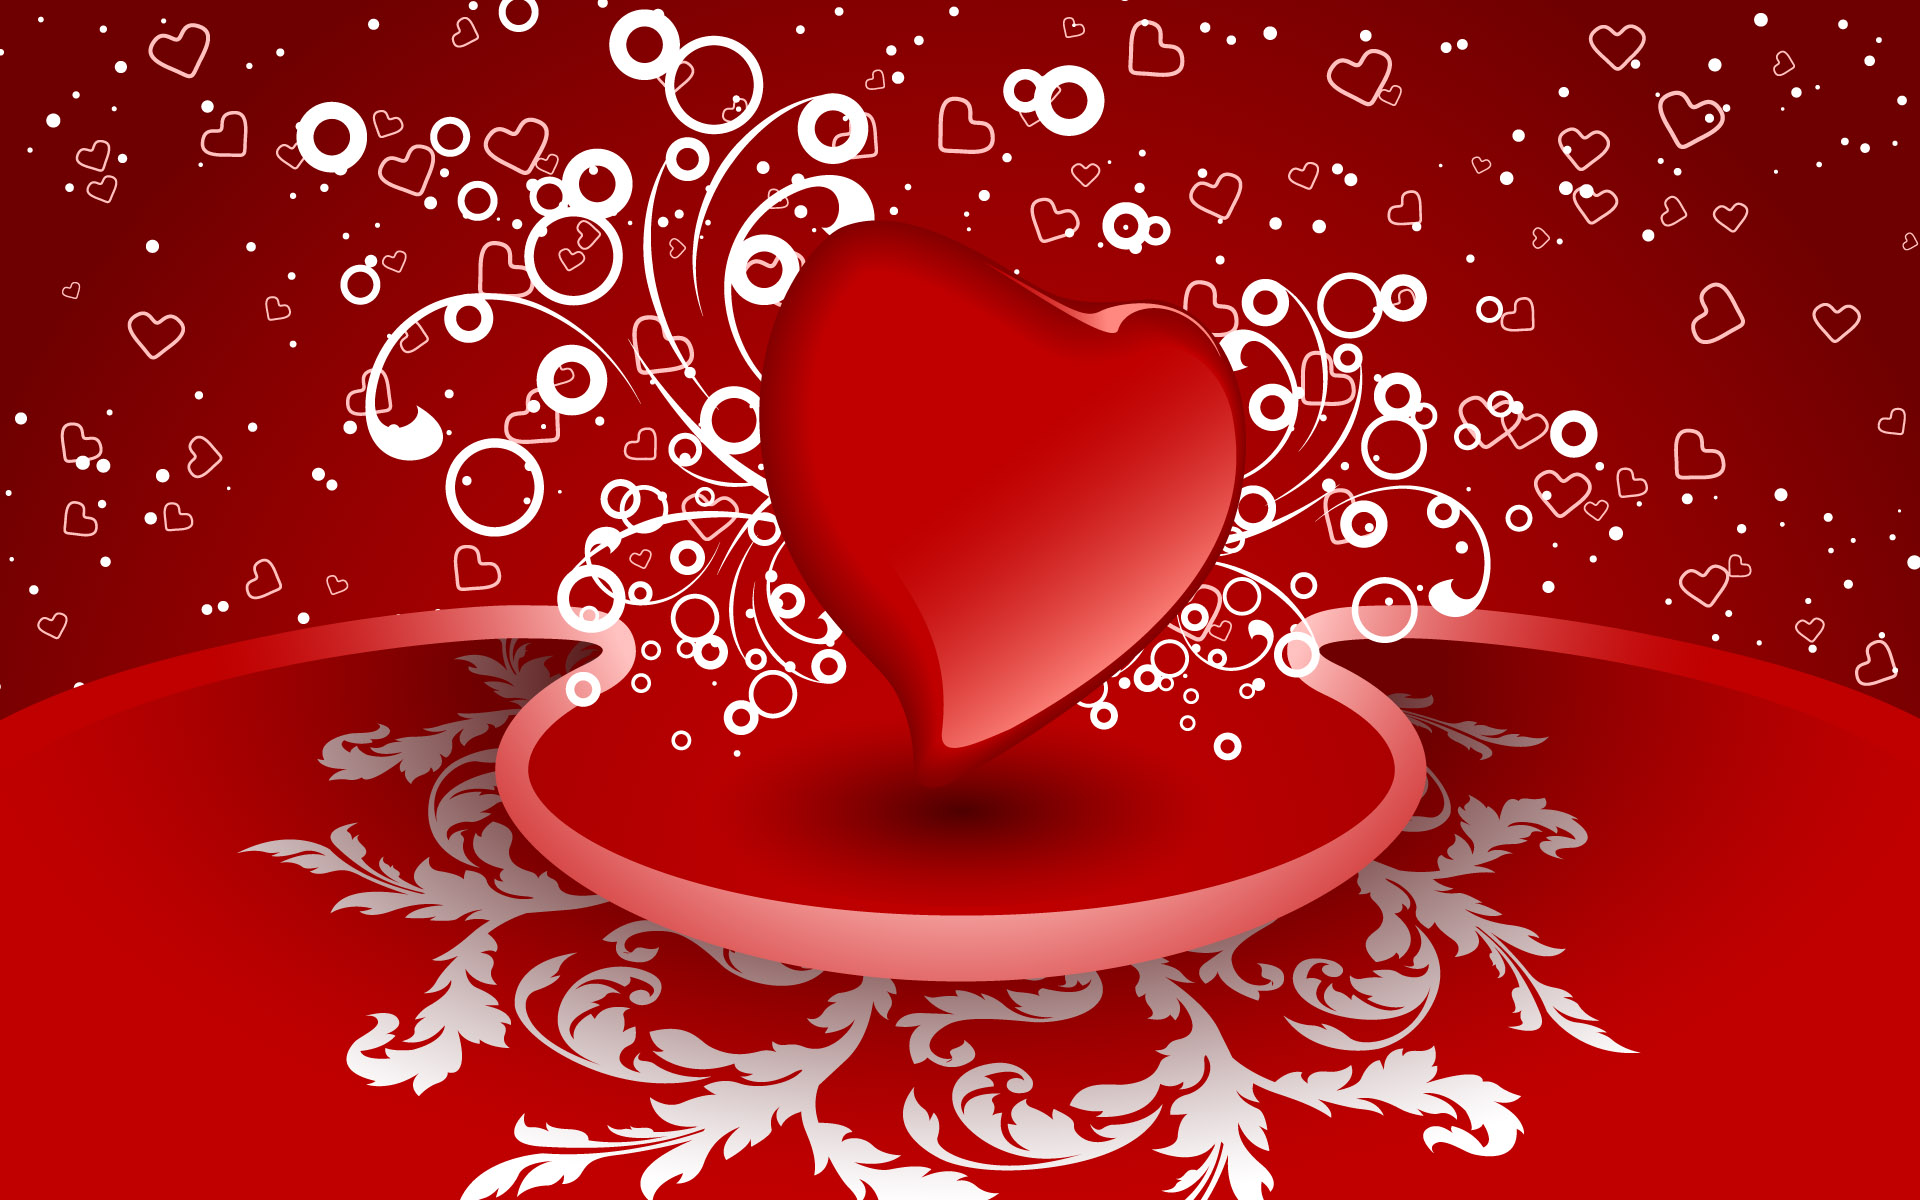 Valentine Day Wallpapers 2013 Wallpup Com